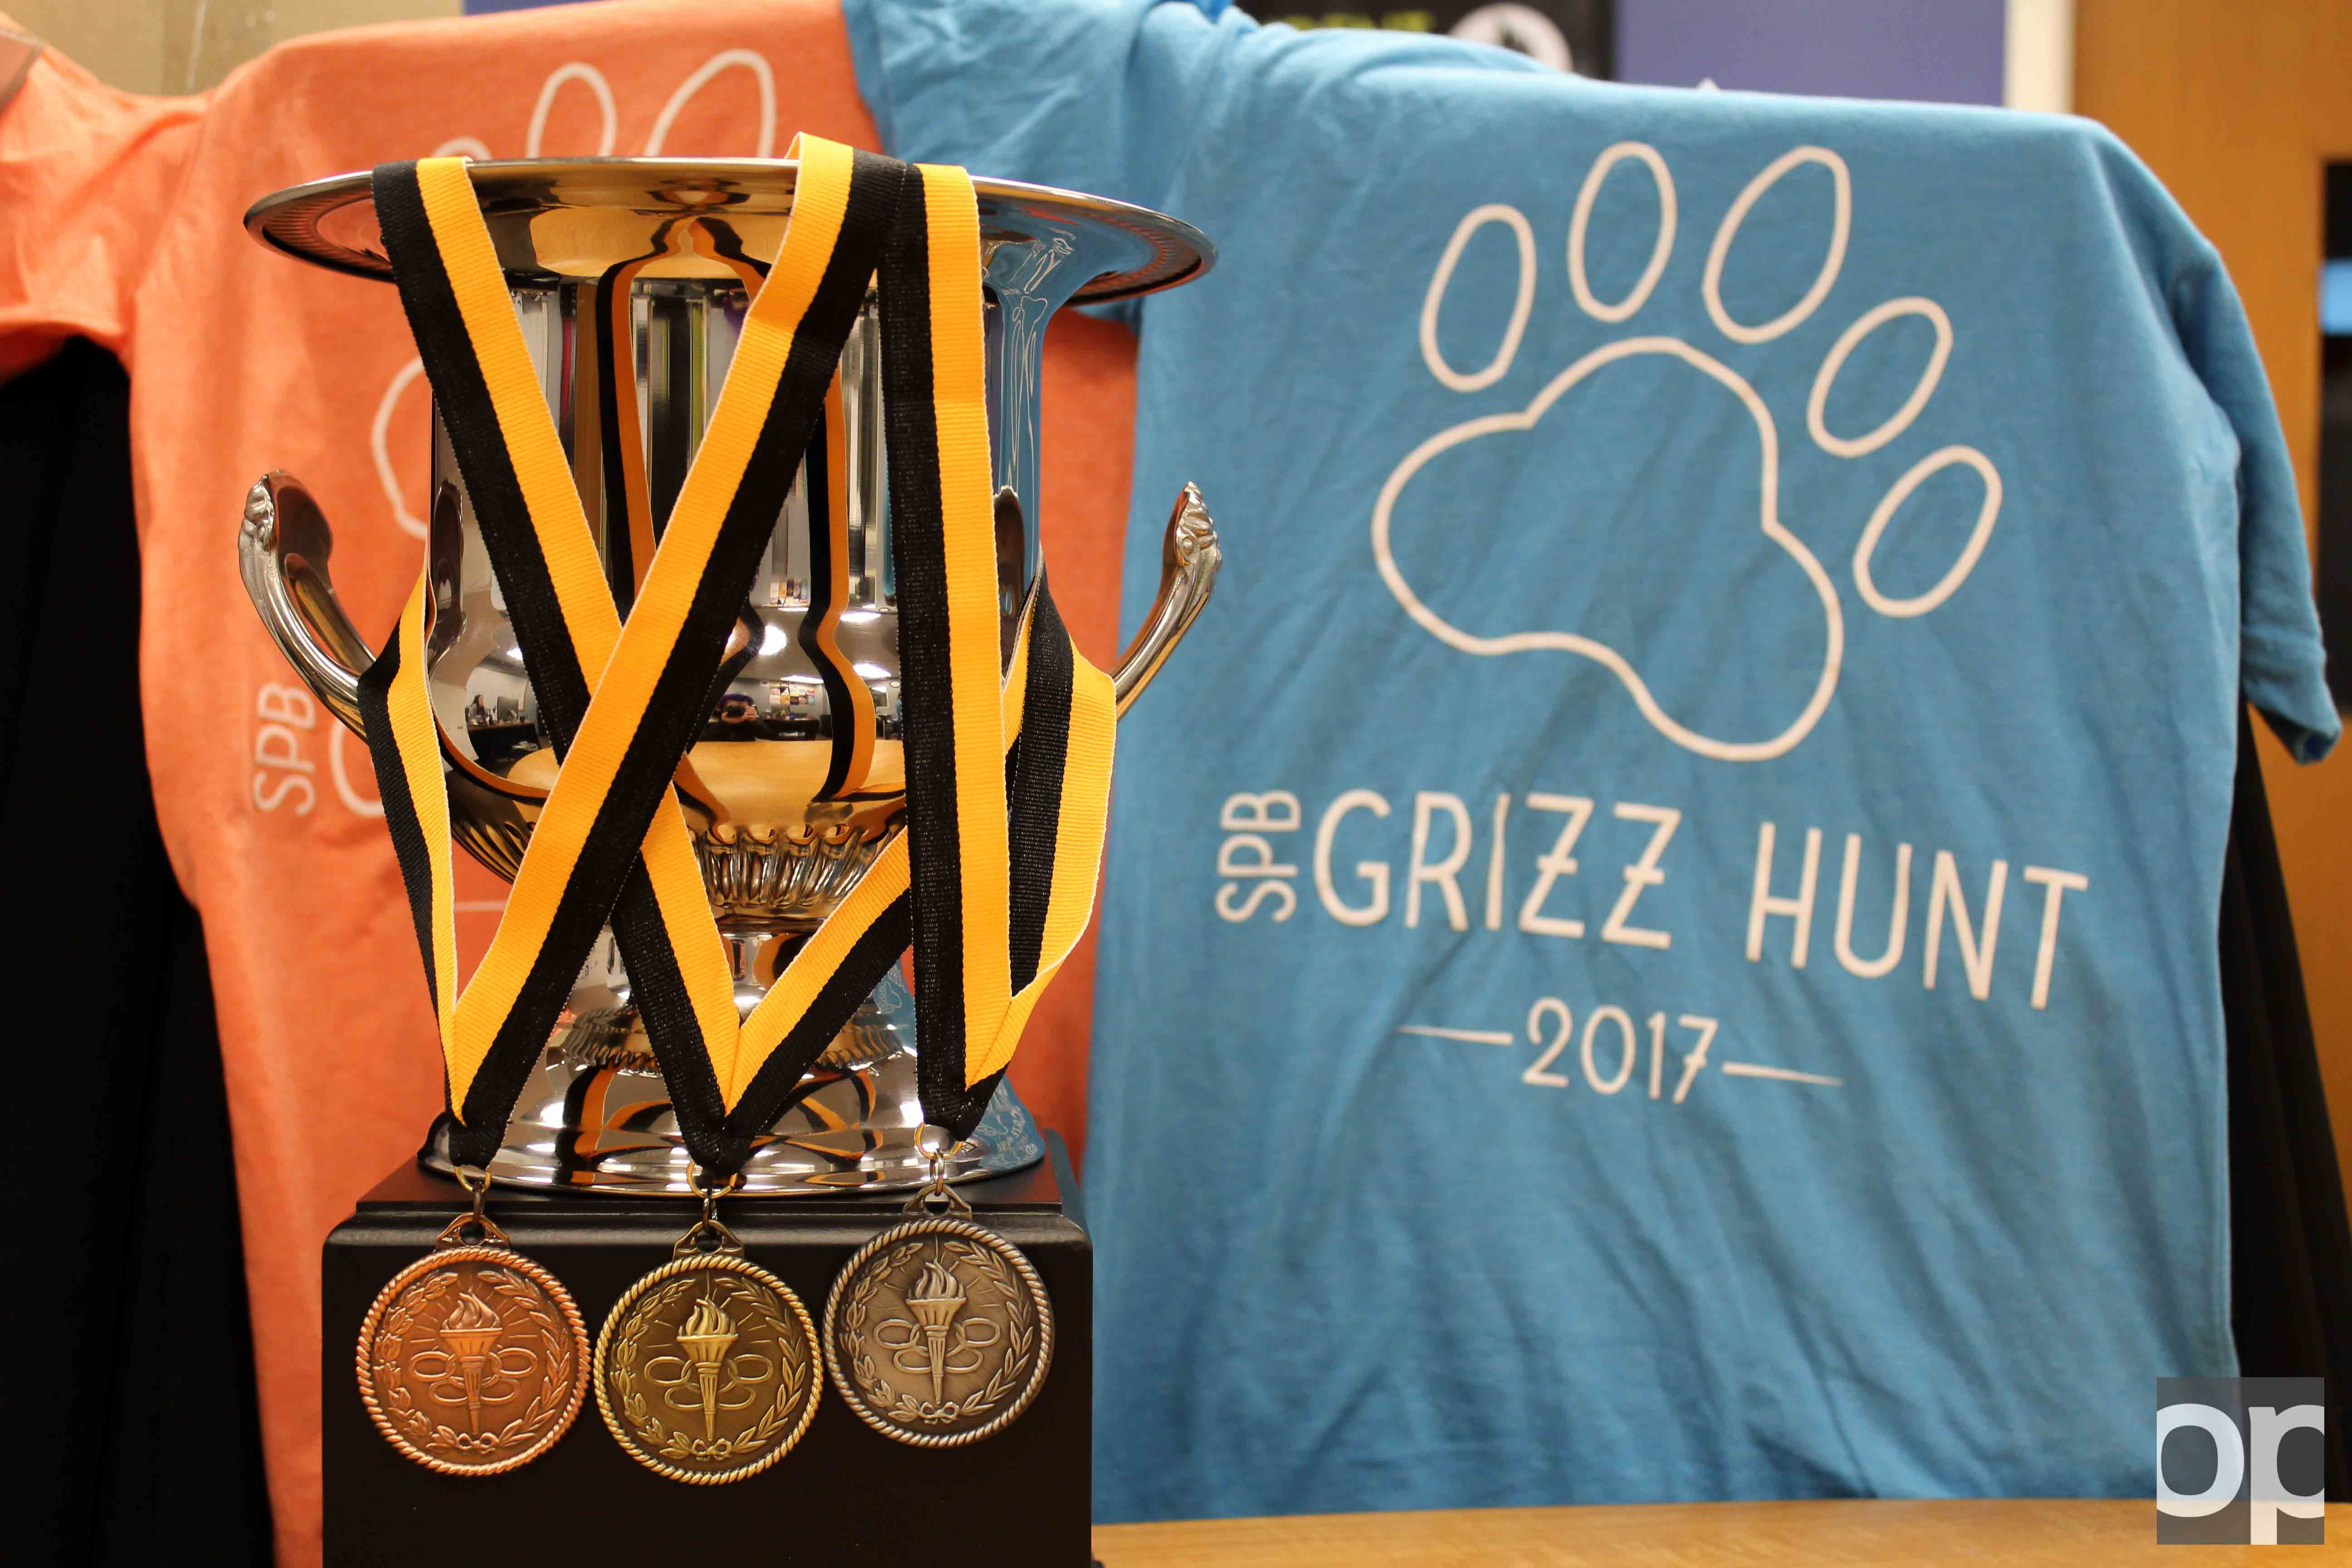 Winners of the Grizz Hunt will take home trophy, medals or tshirts.